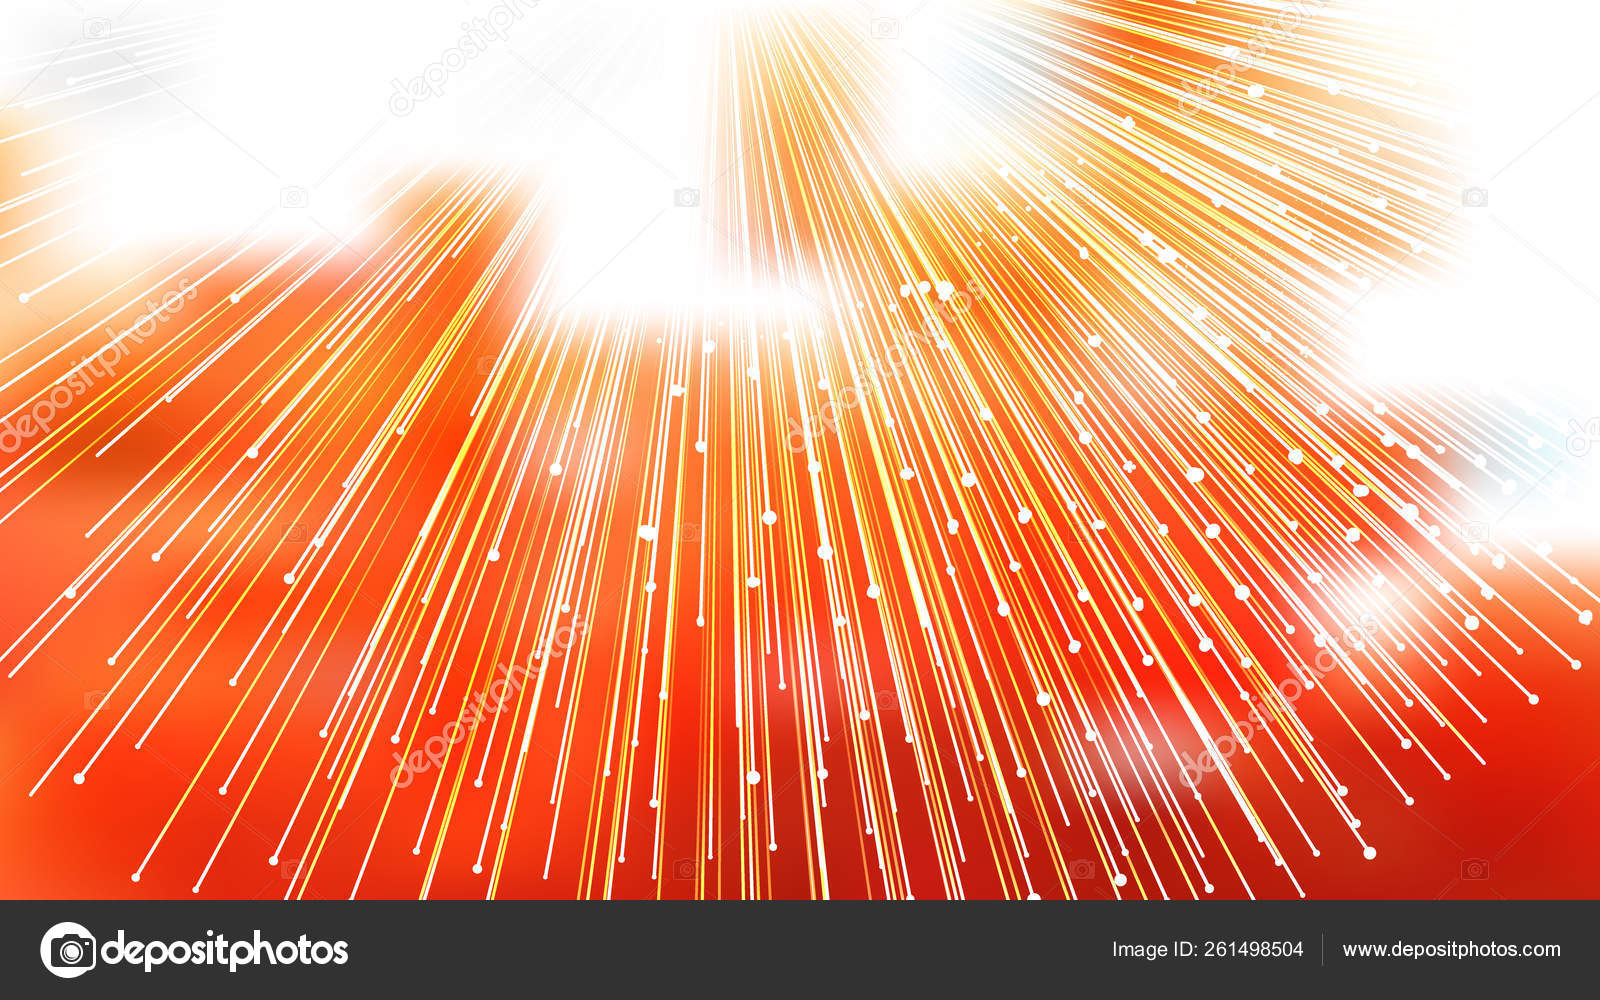 Abstract Orange And White Light Rays Lines Background